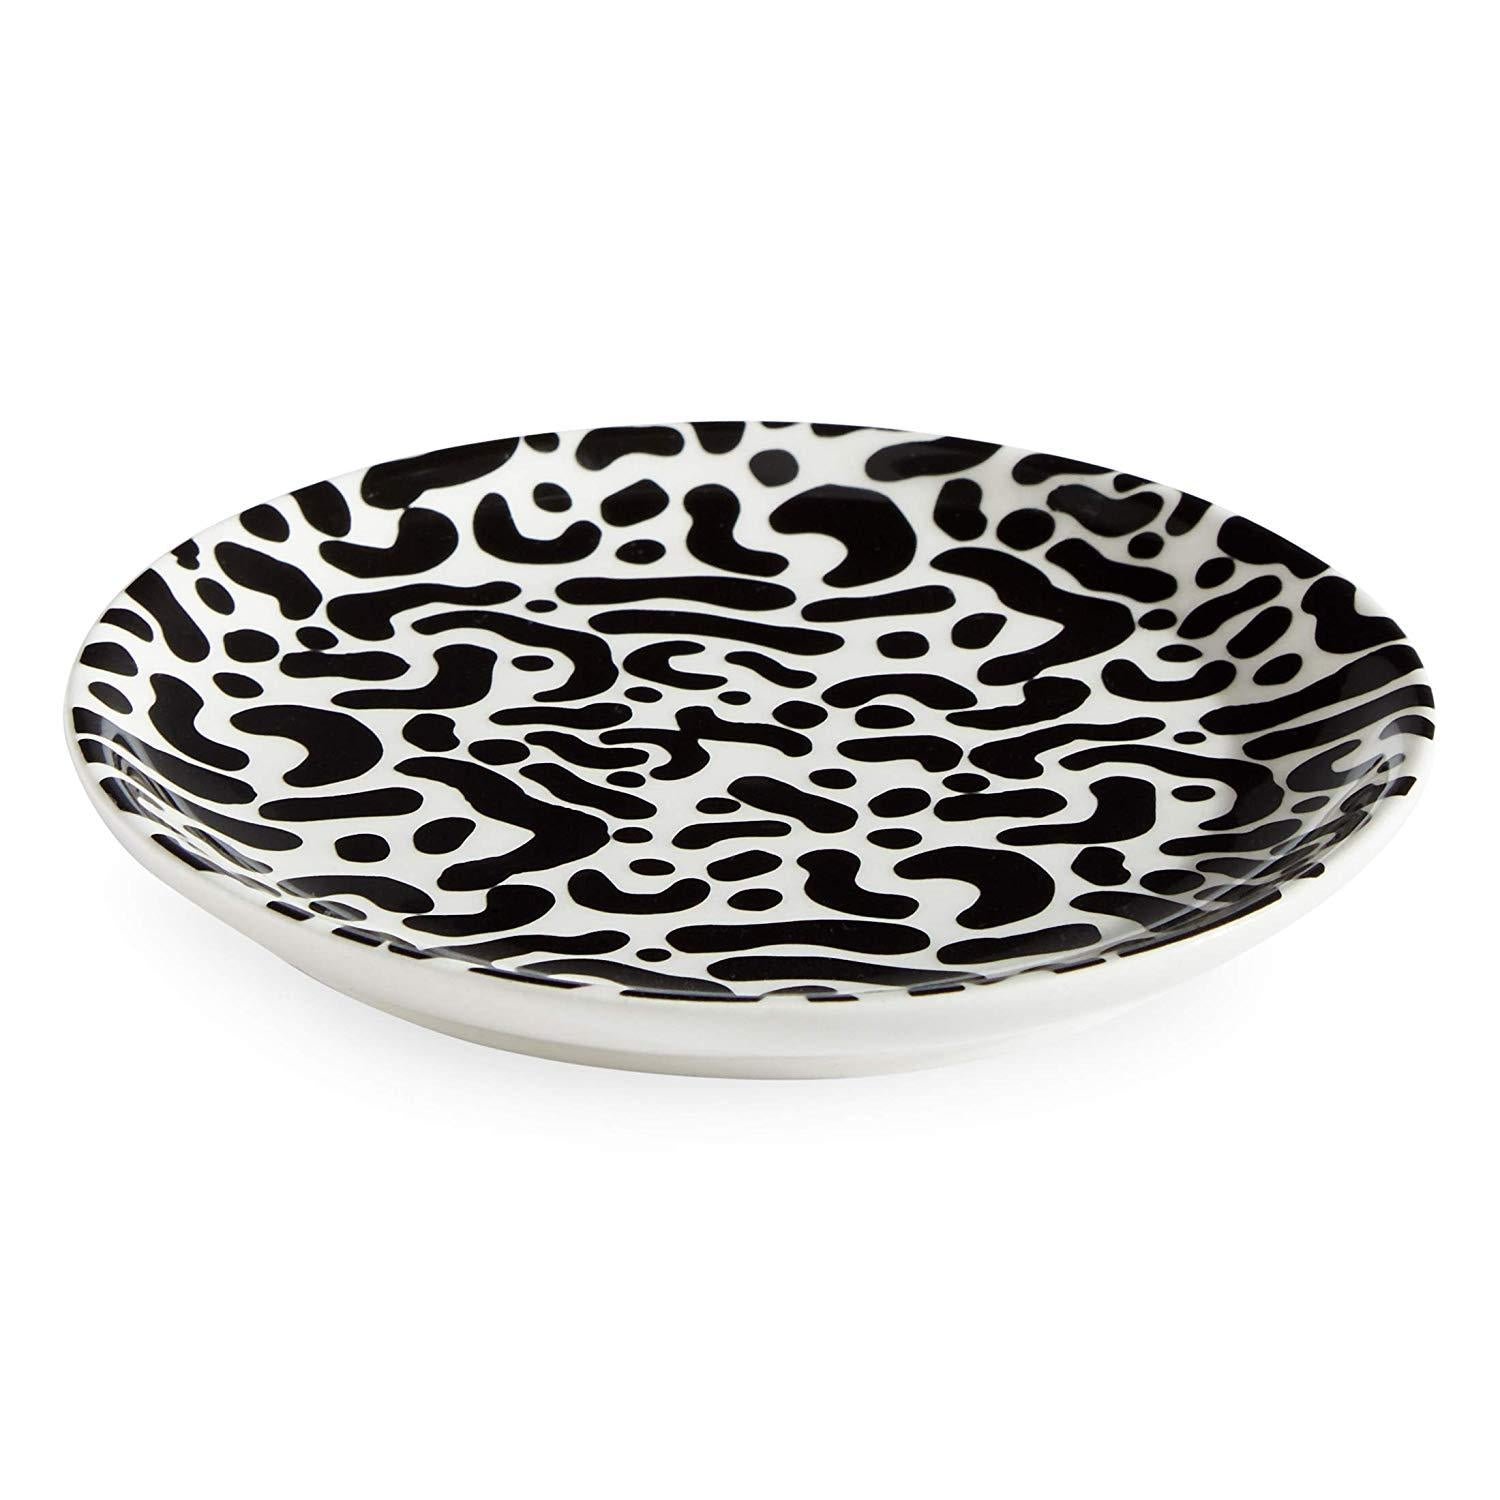 Now House by Jonathan Adler Leopard Trinket Decorative Tray, Black/White